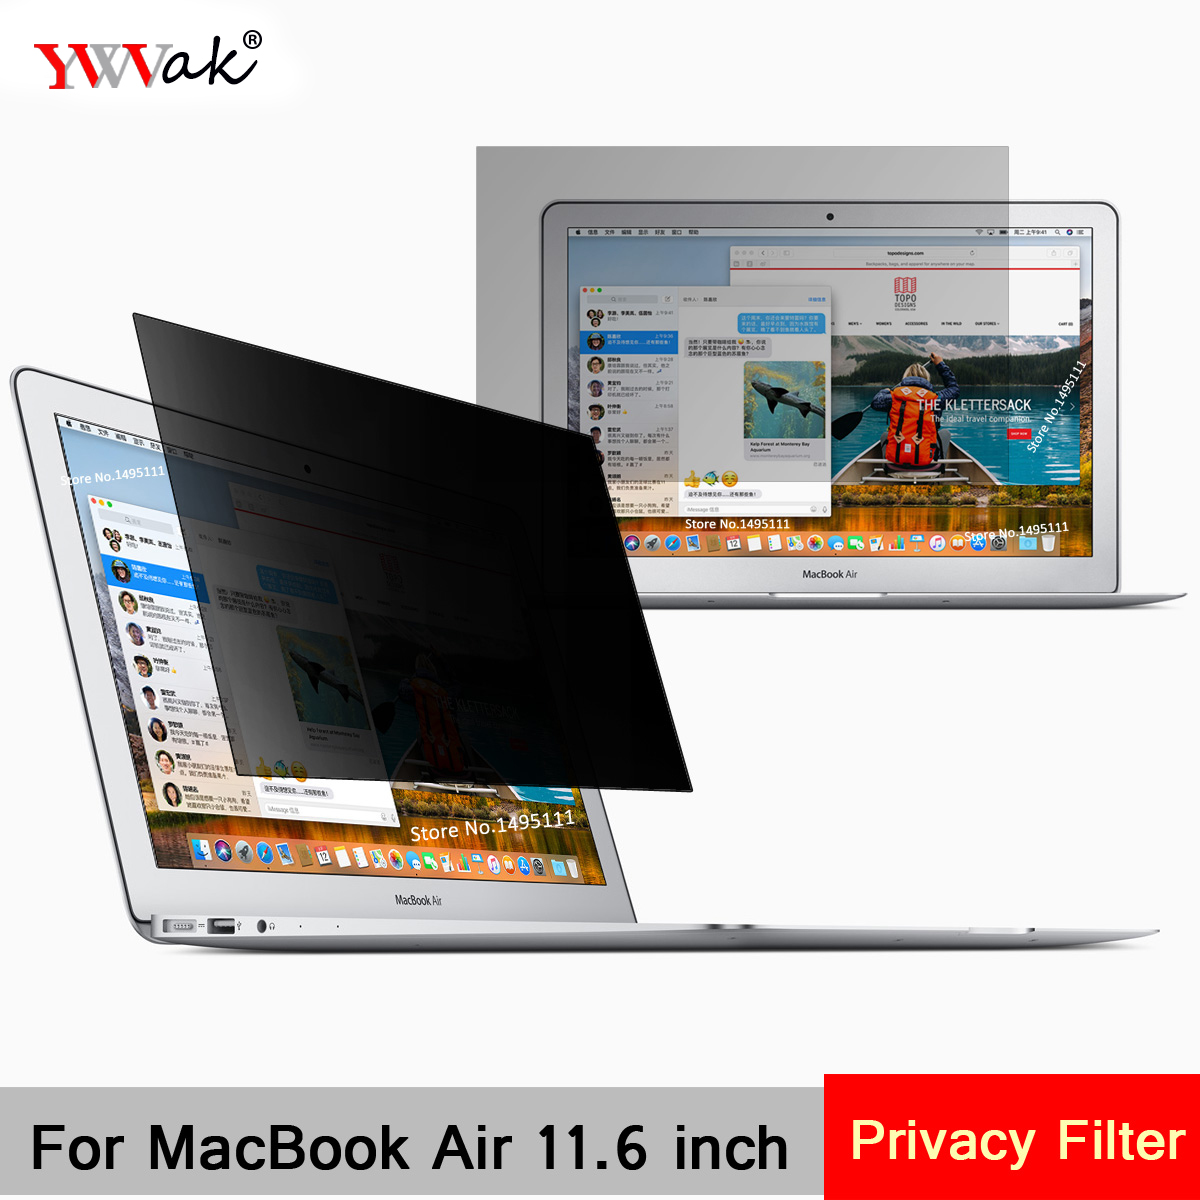 For Apple MacBook Air 11.6 inch (256mm*144mm) Privacy Filter Laptop Notebook Anti-glare Screen protector Protective film image